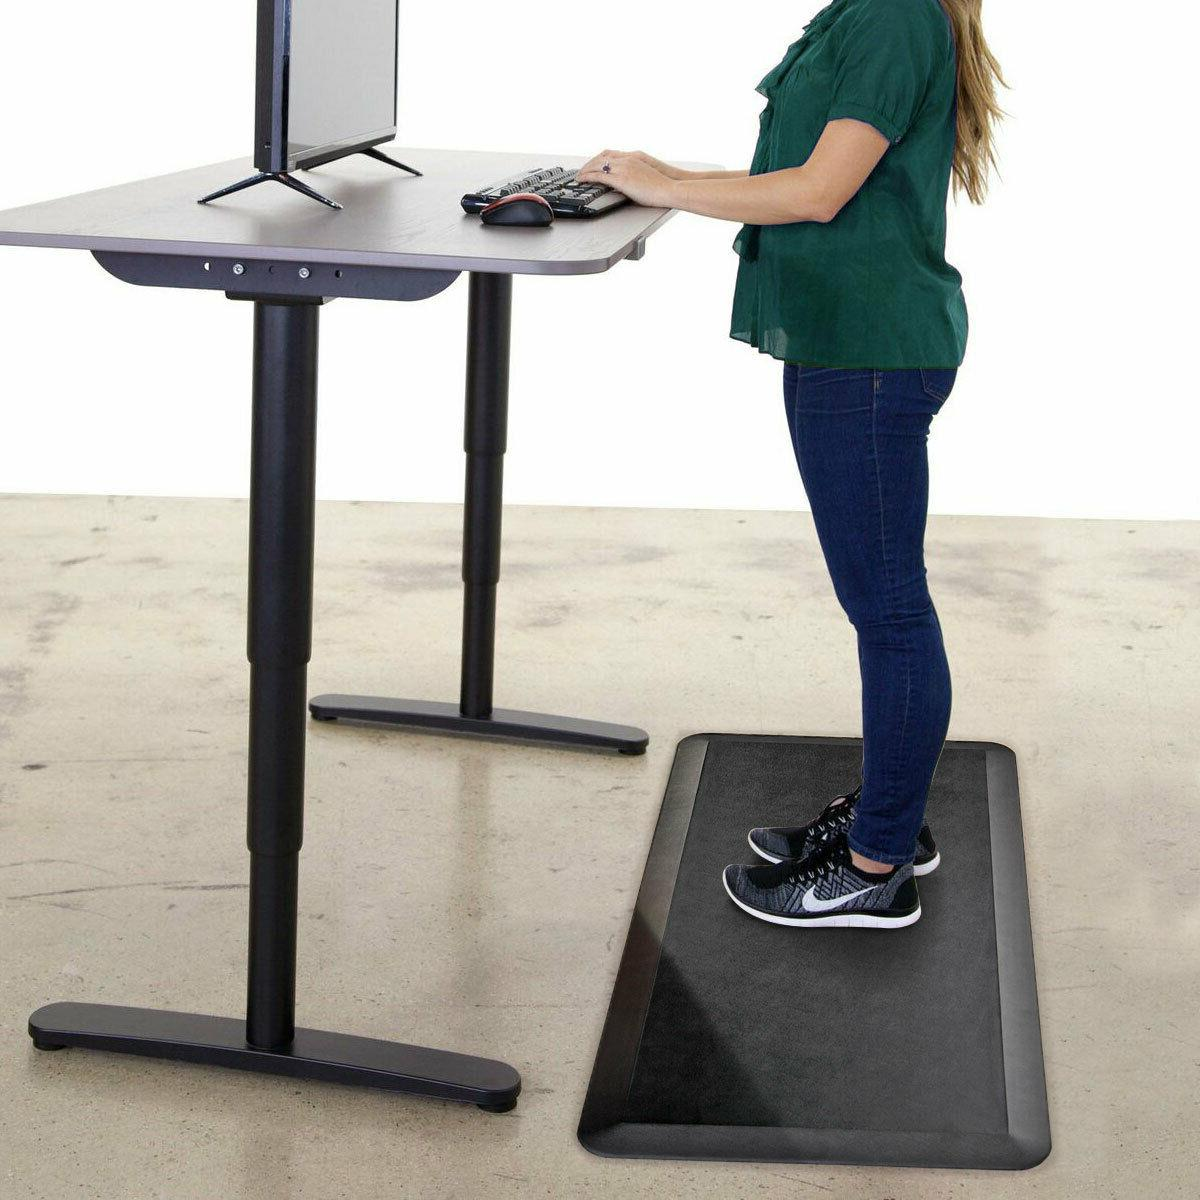 pvc anti fatigue standing mat office